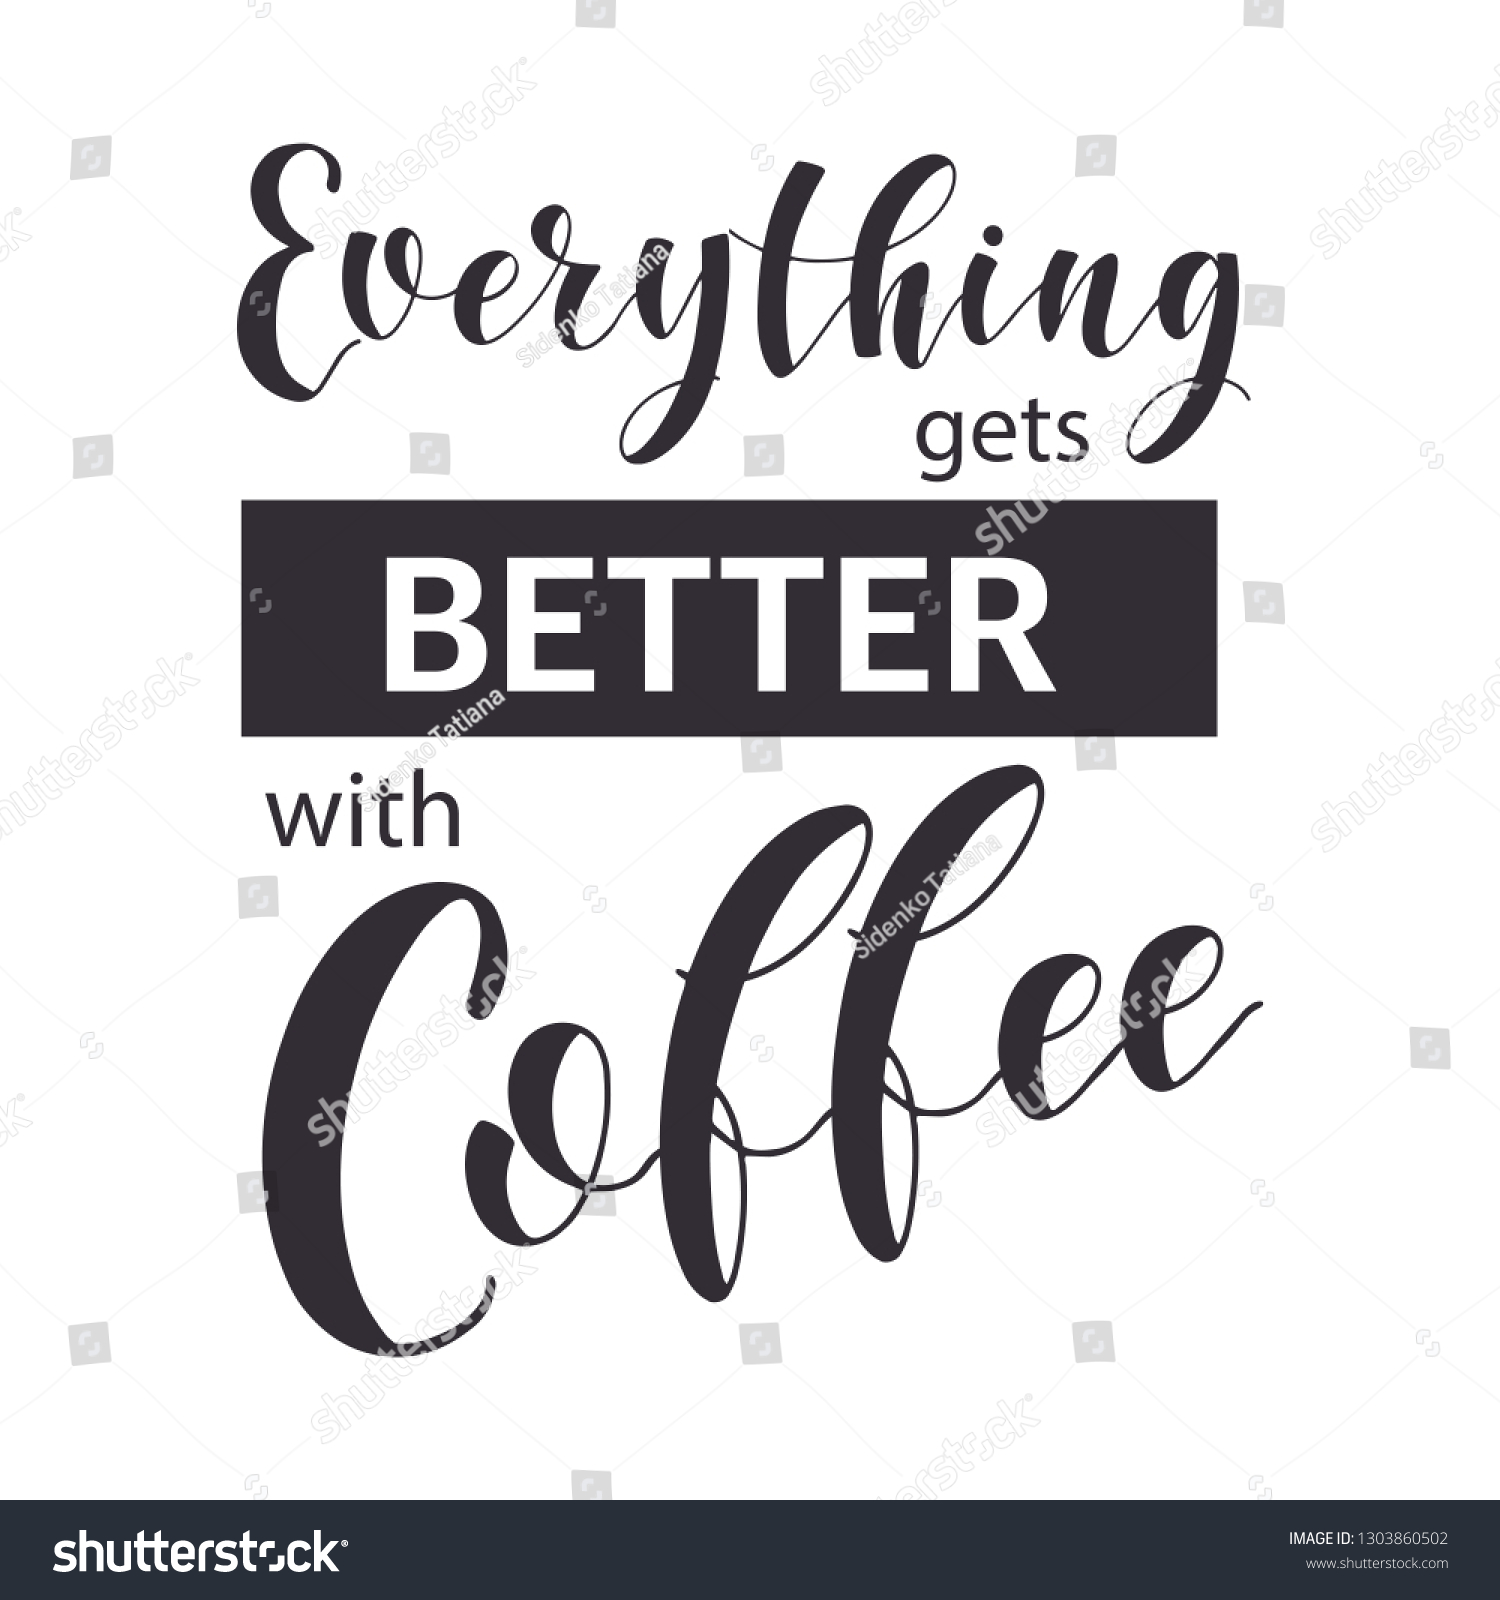 Coffee Quotes Everythinggets Better Coffee Shop Stock Vector Royalty Free 1303860502